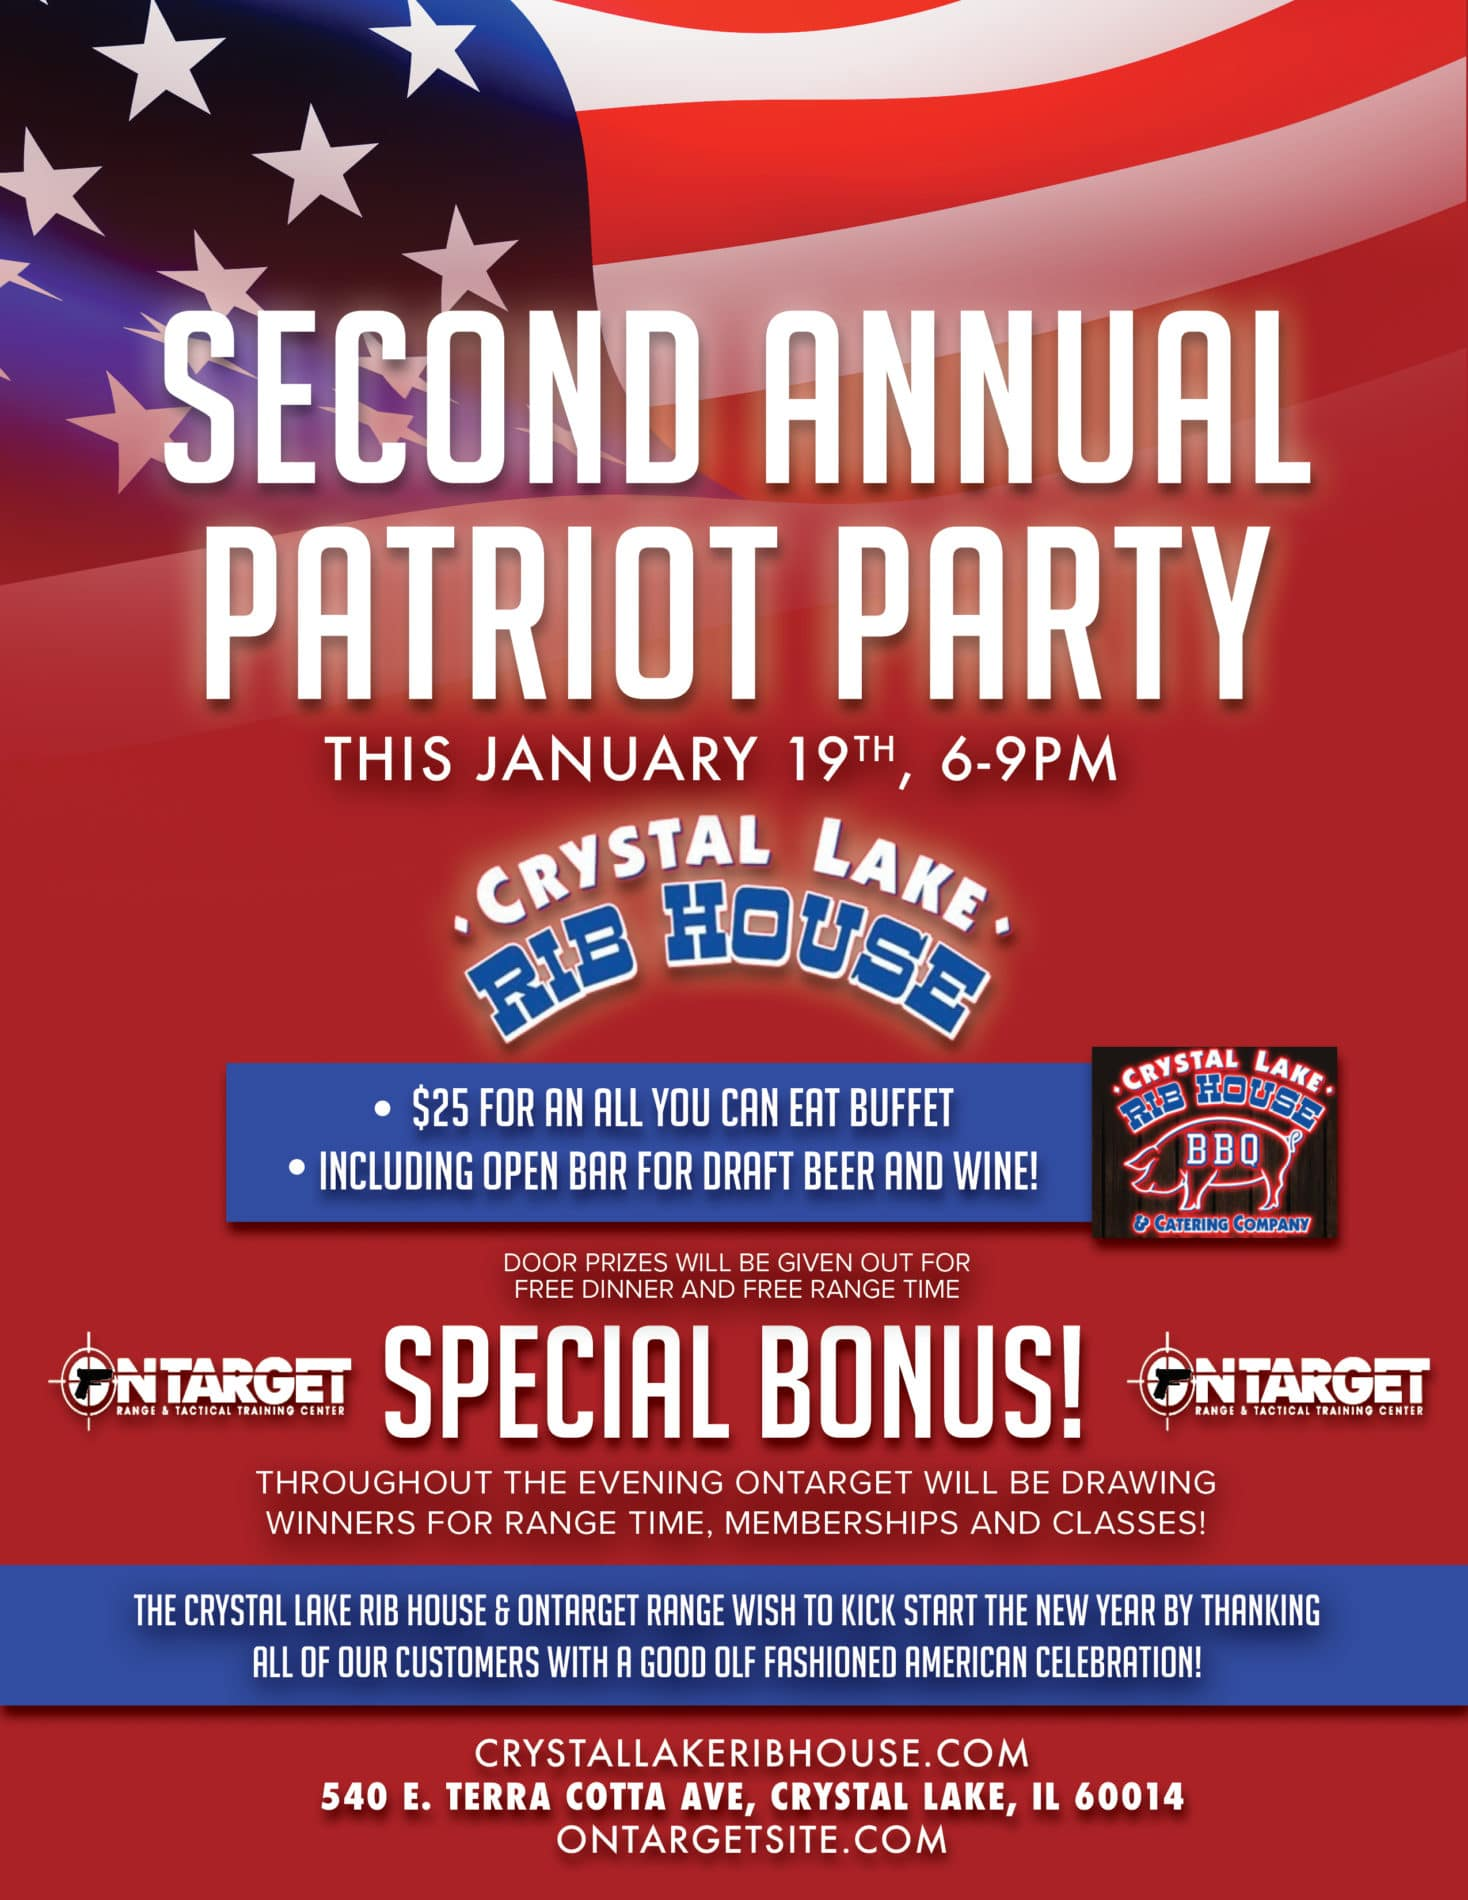 Patriat Party - On Target Range & Tactical Center in Crystal